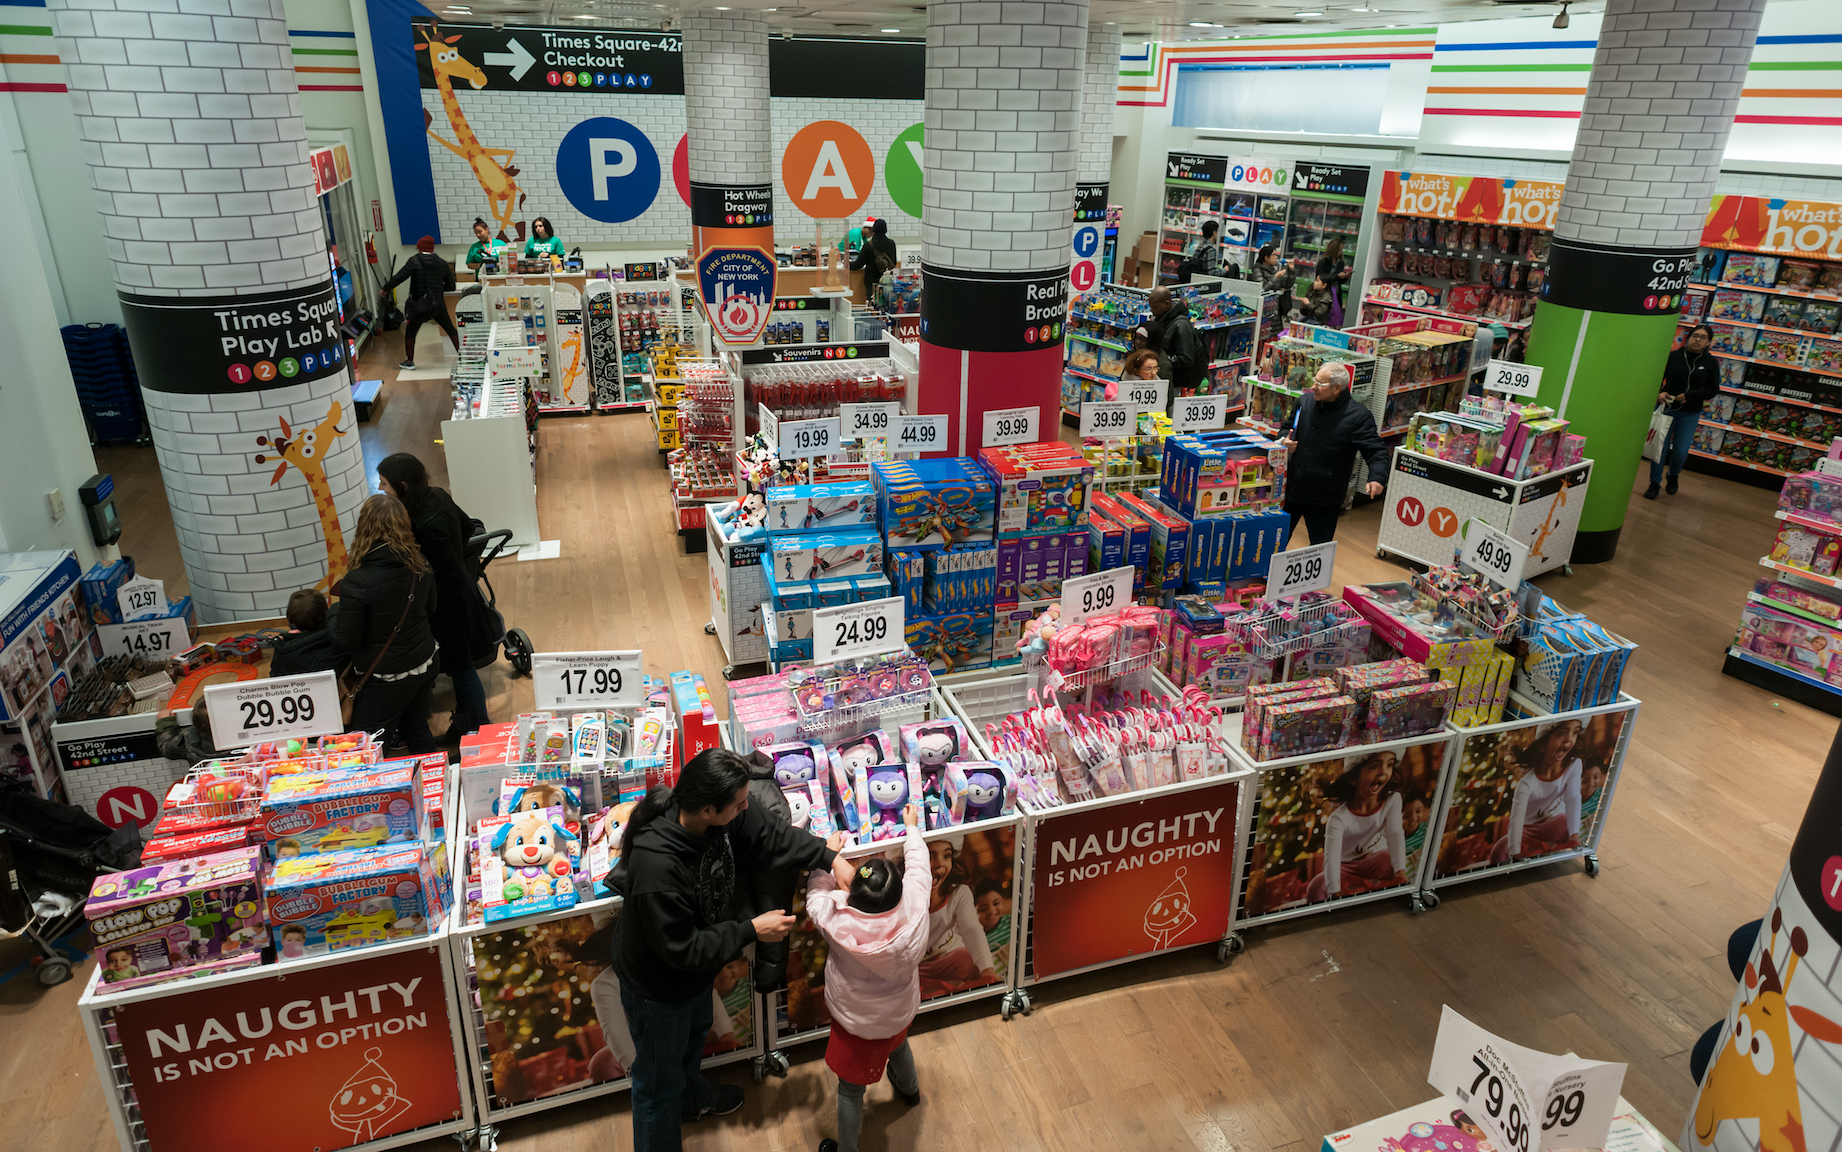 Toys R Us liquidation sale likely to start Friday, spokesperson says